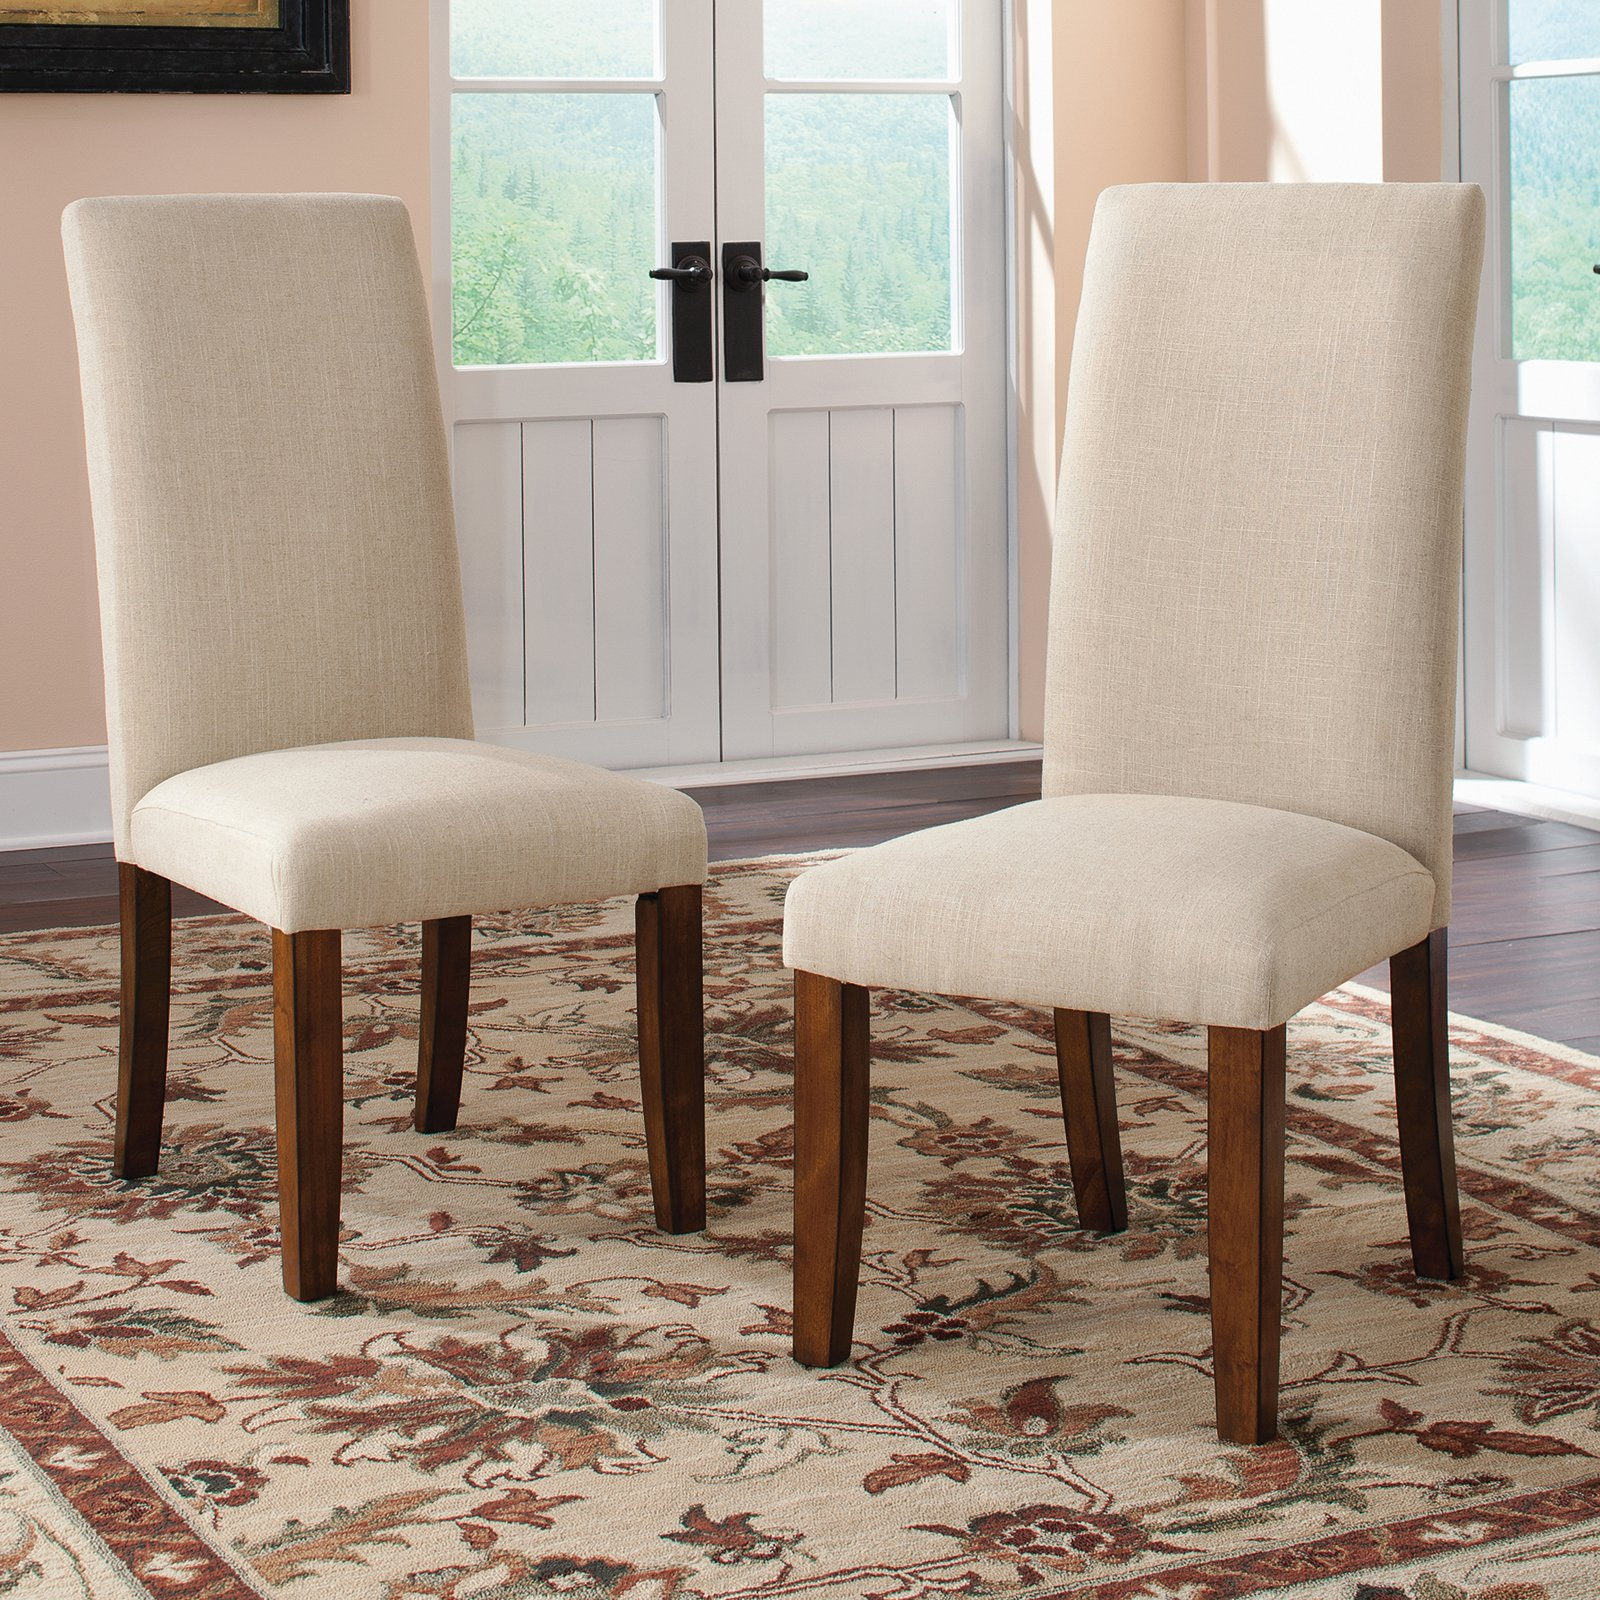 Dining Chairs in Medium Wood Finish Set of 2 by Studio RTA